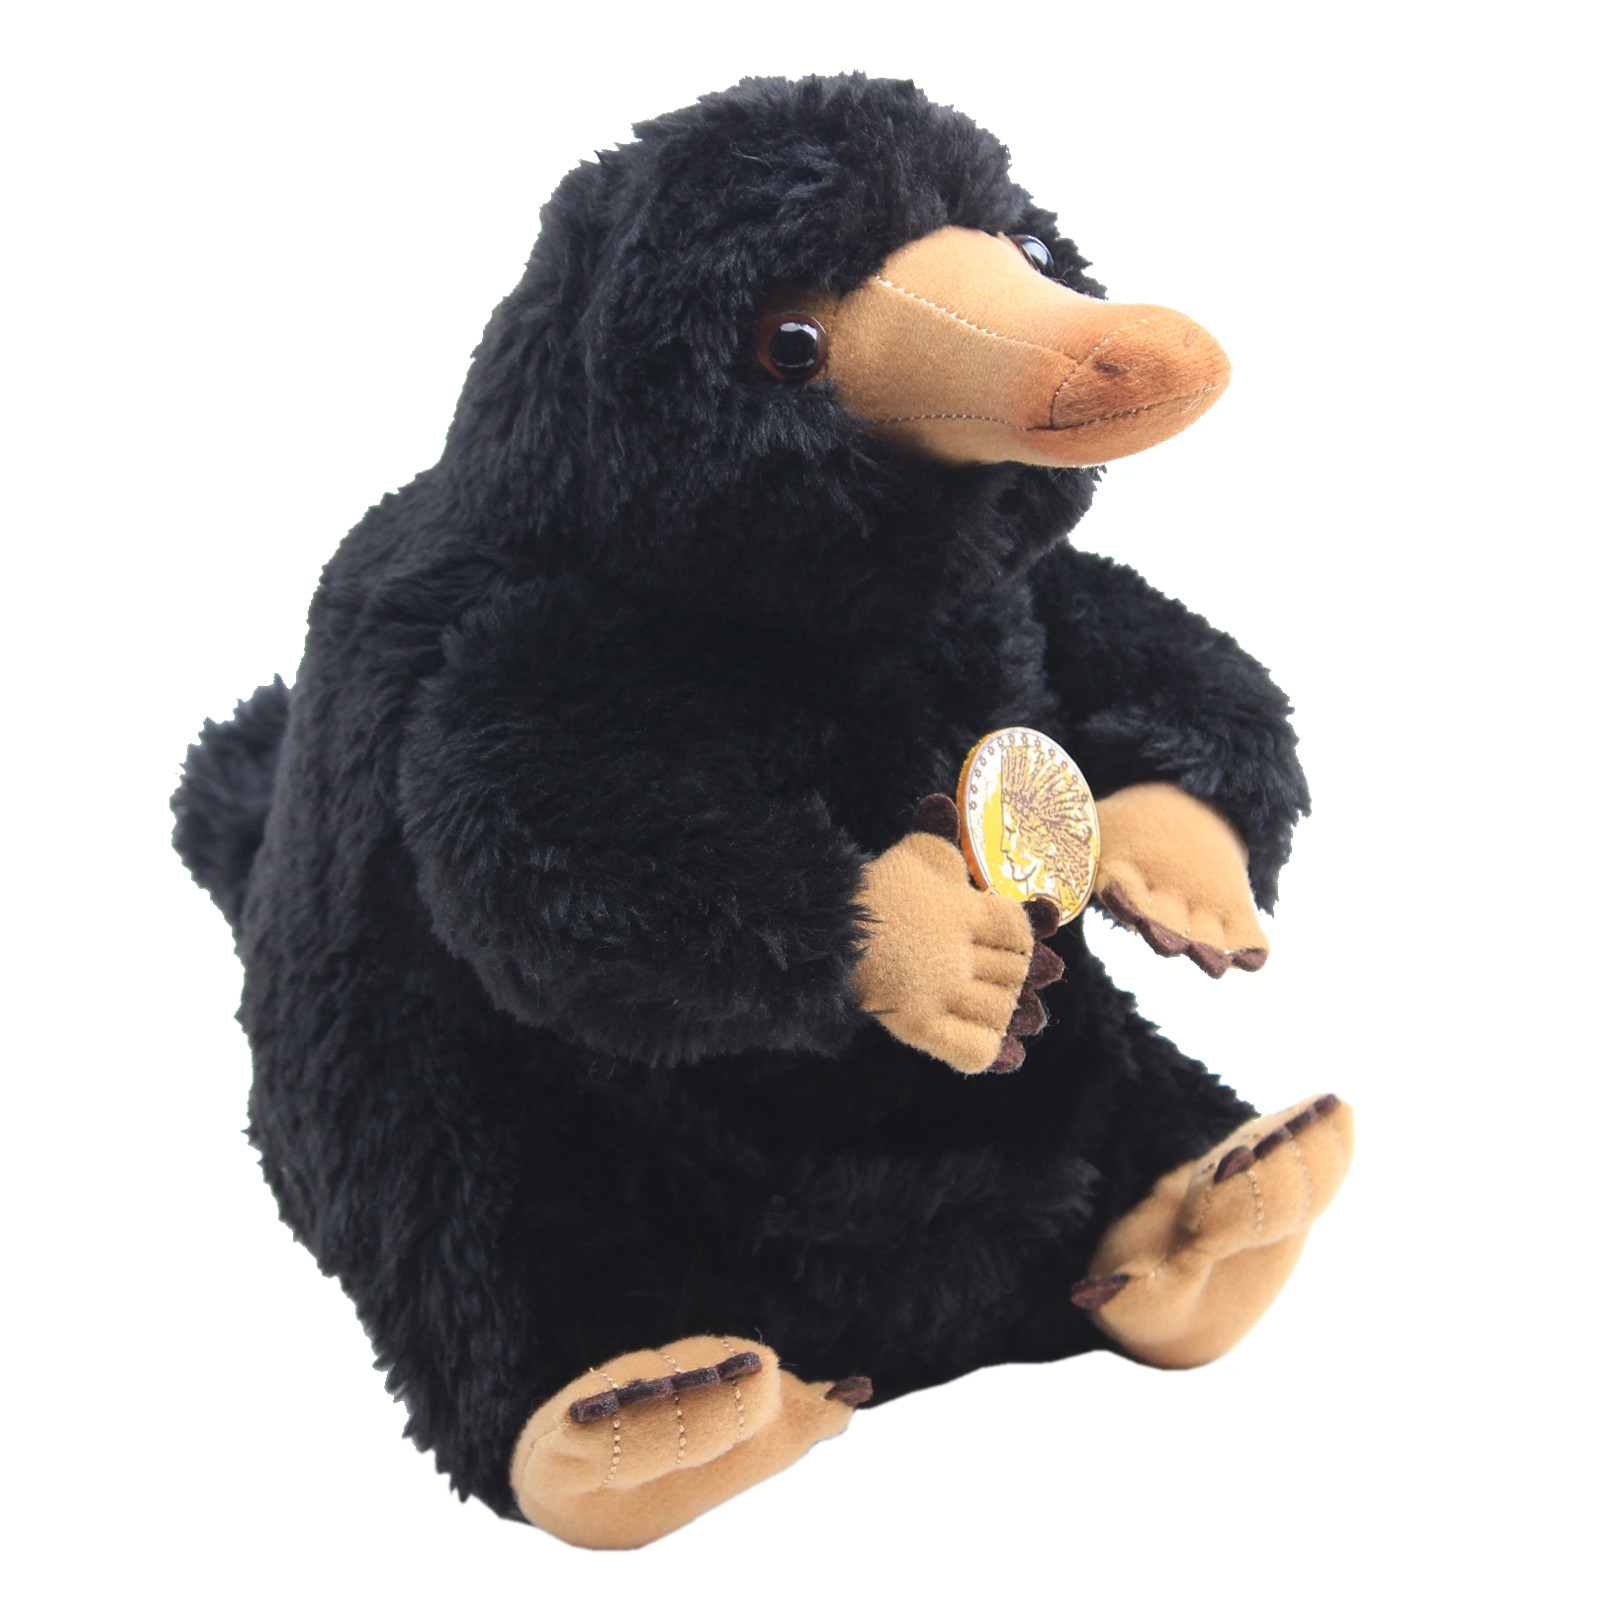 <font><b>20</b></font> <font><b>cm</b></font> Black Duckbills Plush Toys <font><b>Peluche</b></font> Fantastic Beasts and Where to Find Them Niffler Collector's Stuffed Toy Women Kids Gift image